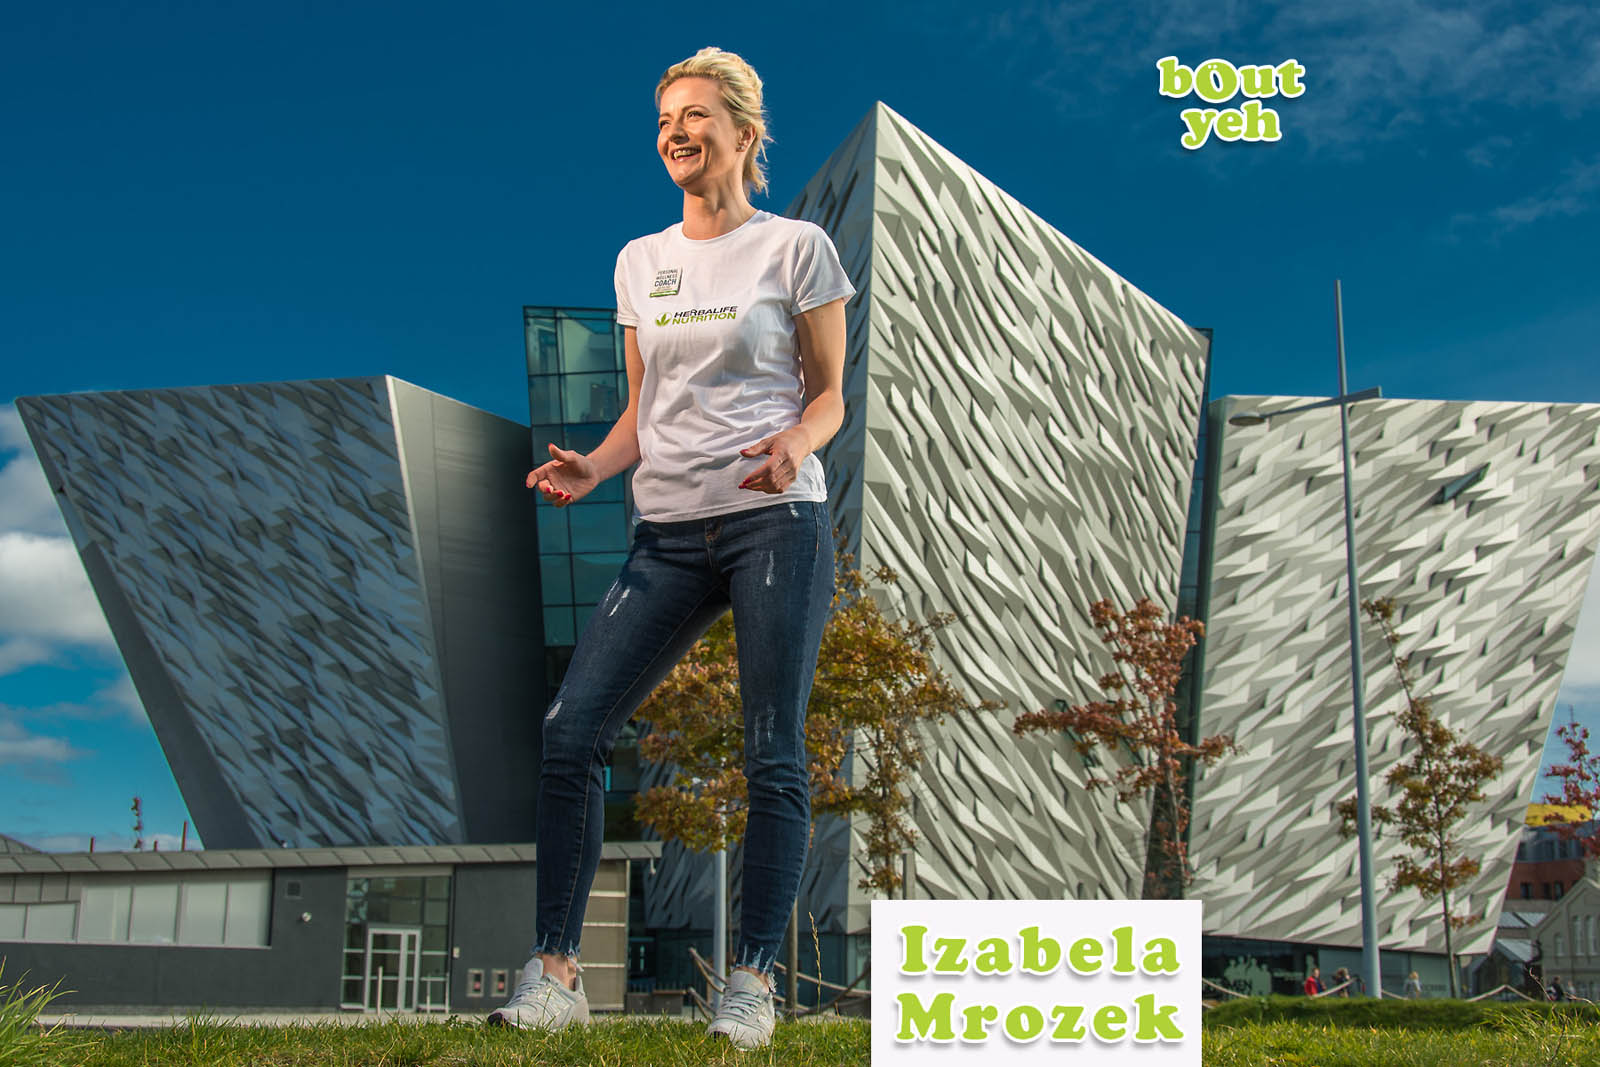 Social Media Marketing Consultants Belfast - Herbalife campaign photo 5926. Photo by Bout Yeh used in a Social Media Marketing campaign across Bout Yeh's Social Media platforms for Herbalife agent in Northern Ireland.